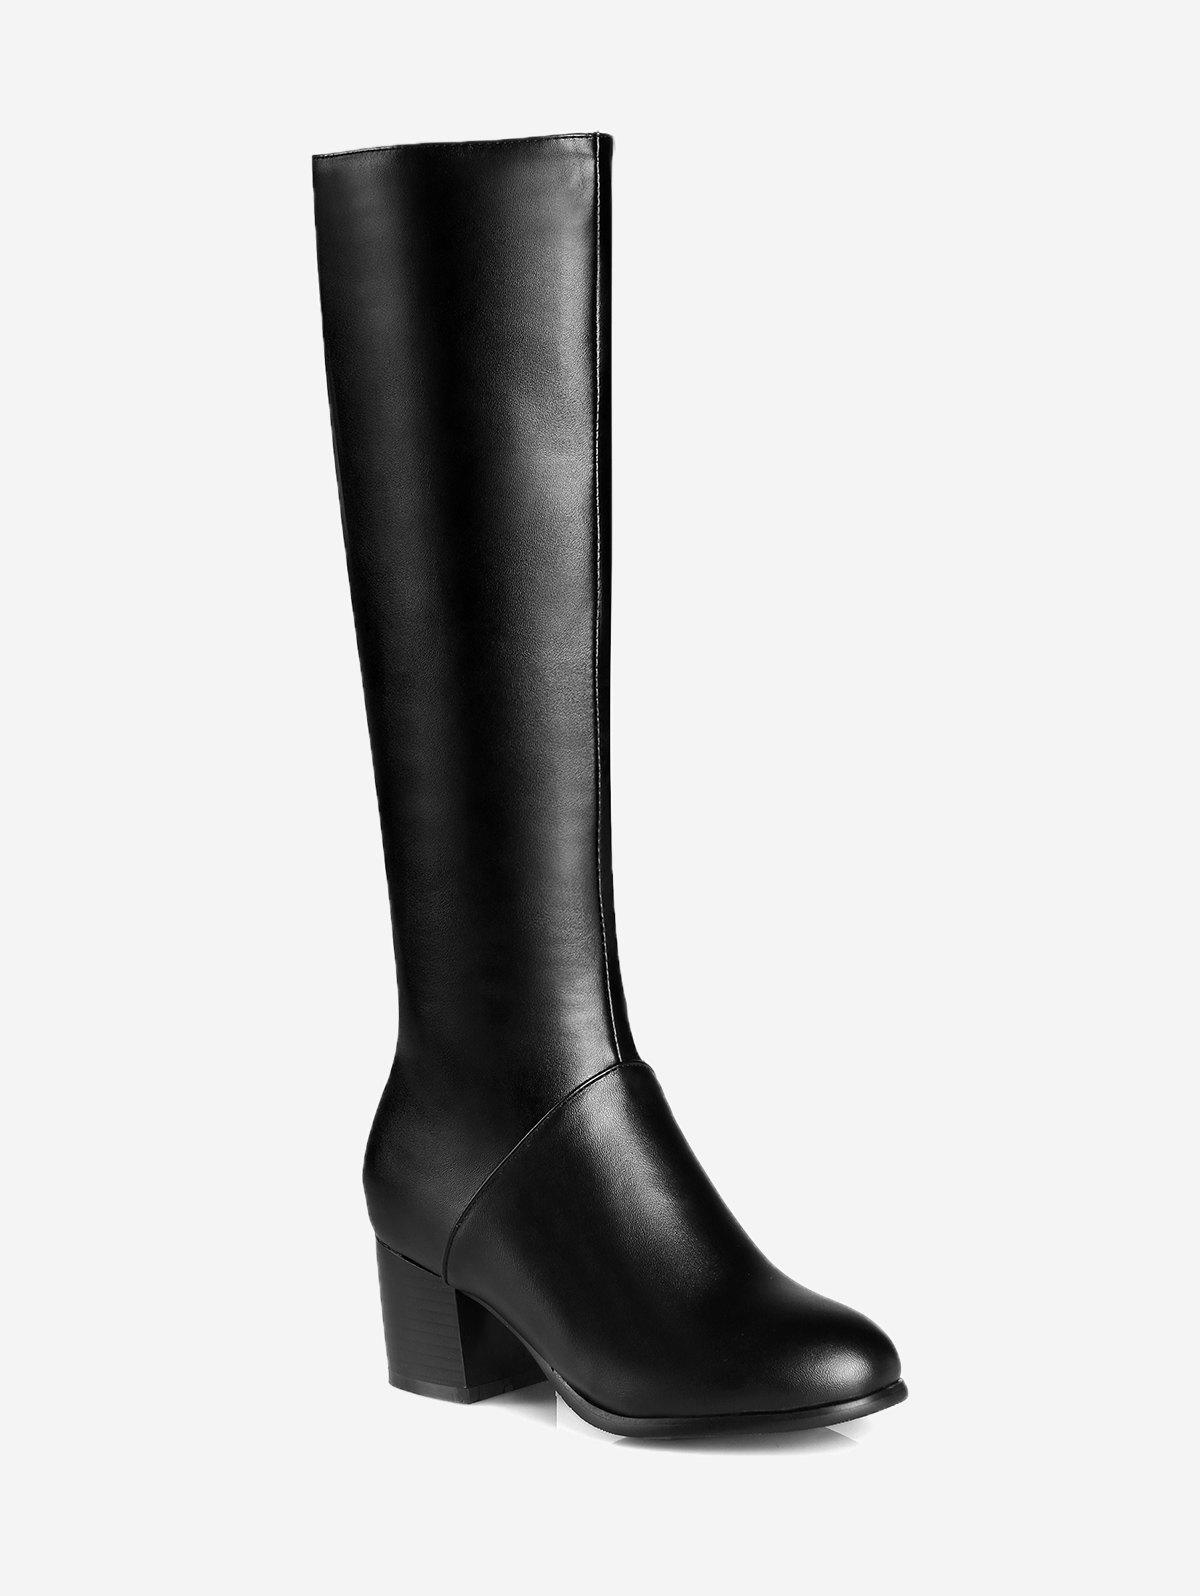 PU Leather Mid Heel Knee High Boots high quality full grain leather and pu mid calf boots size 40 41 42 43 44 rhinestone decoration zipper design square heel boots